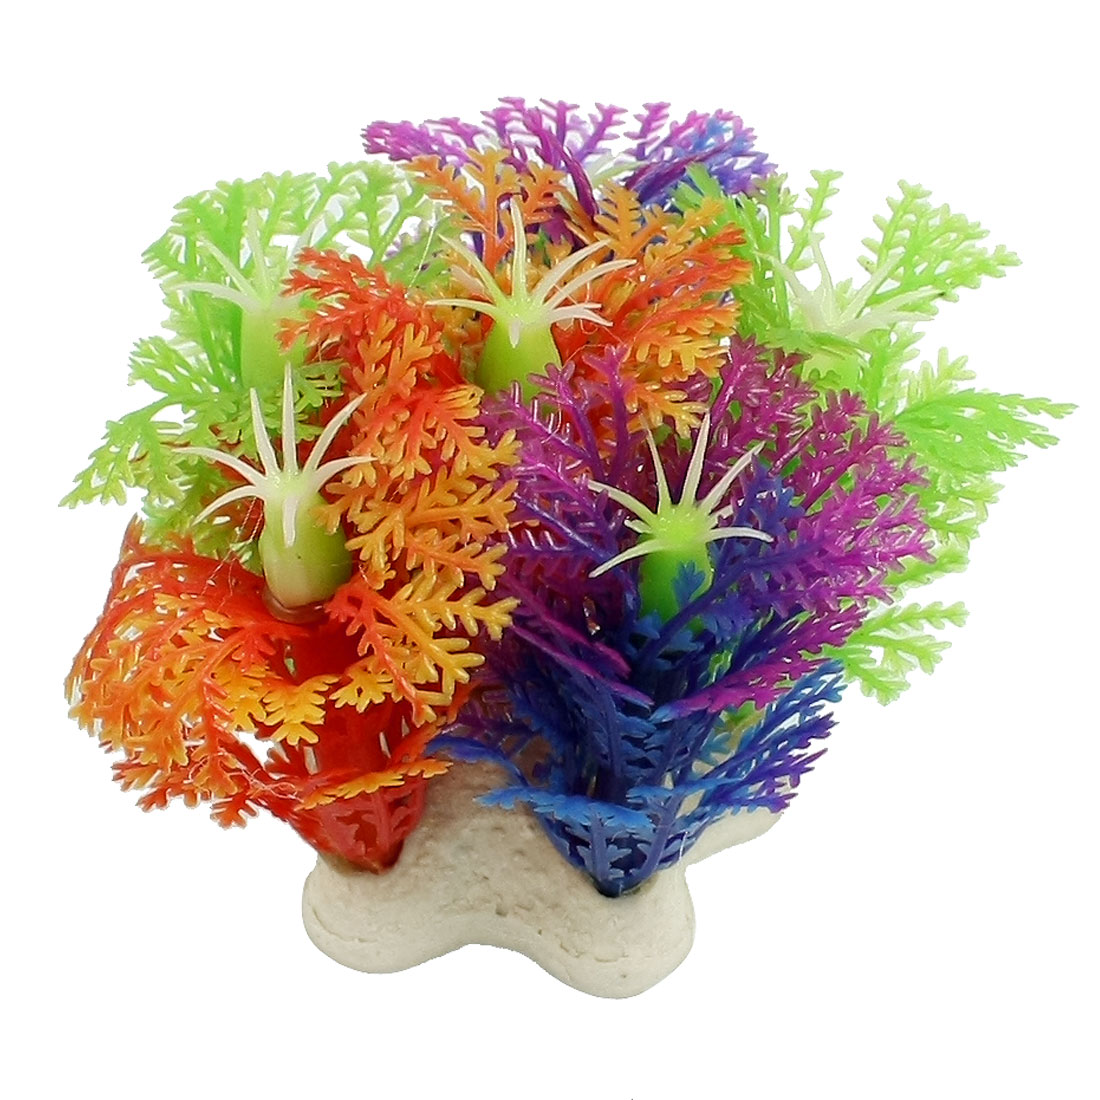 Fish Tank Plastic Snowflake Shaped Artificial Ornament Plant Yellow 2.1 Inch